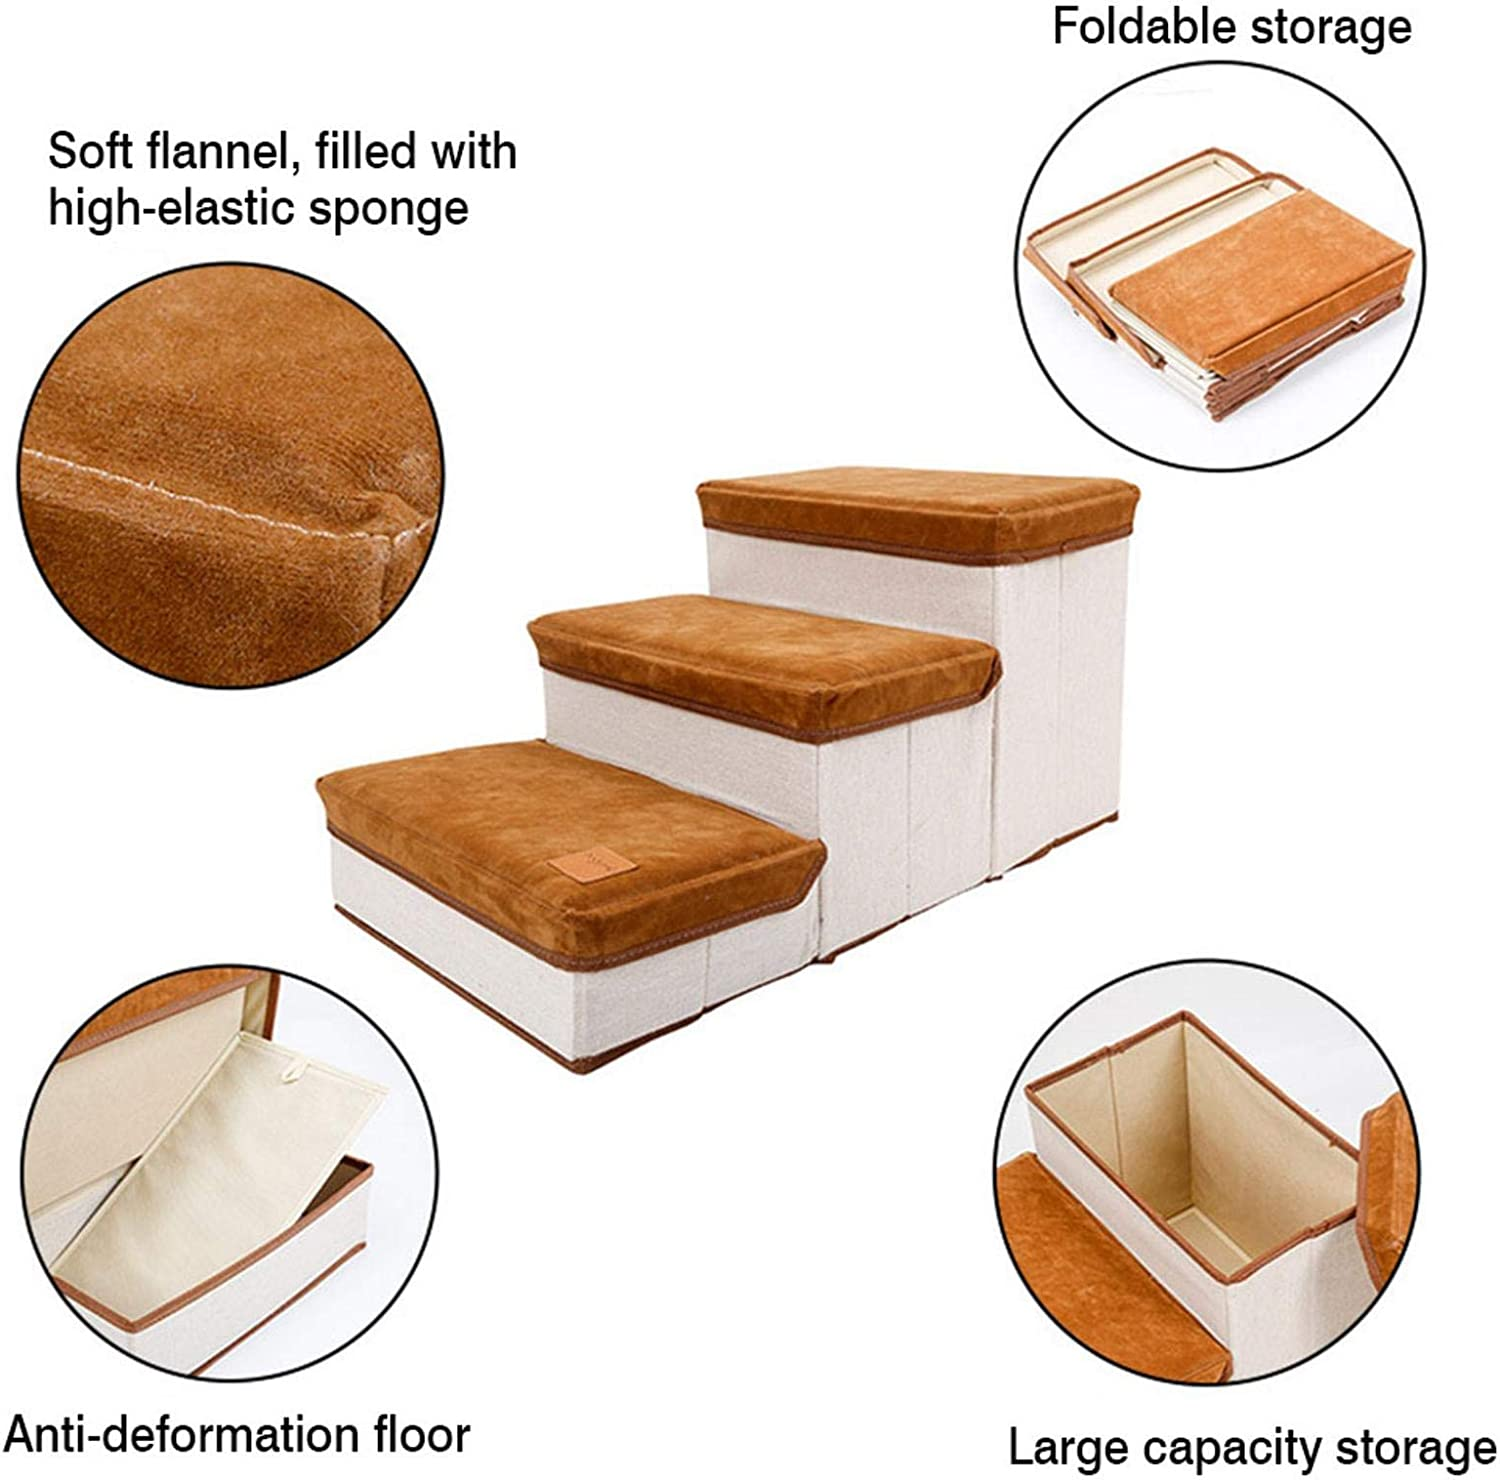 Indoor Foldable Steps For Dogs And Cats 3-step Storage Style Pet Stair Pet Ramp For Dogs Puppies Up To 55 Pounds Hengjierun Foldable Storage Pet Dog Stair Steps